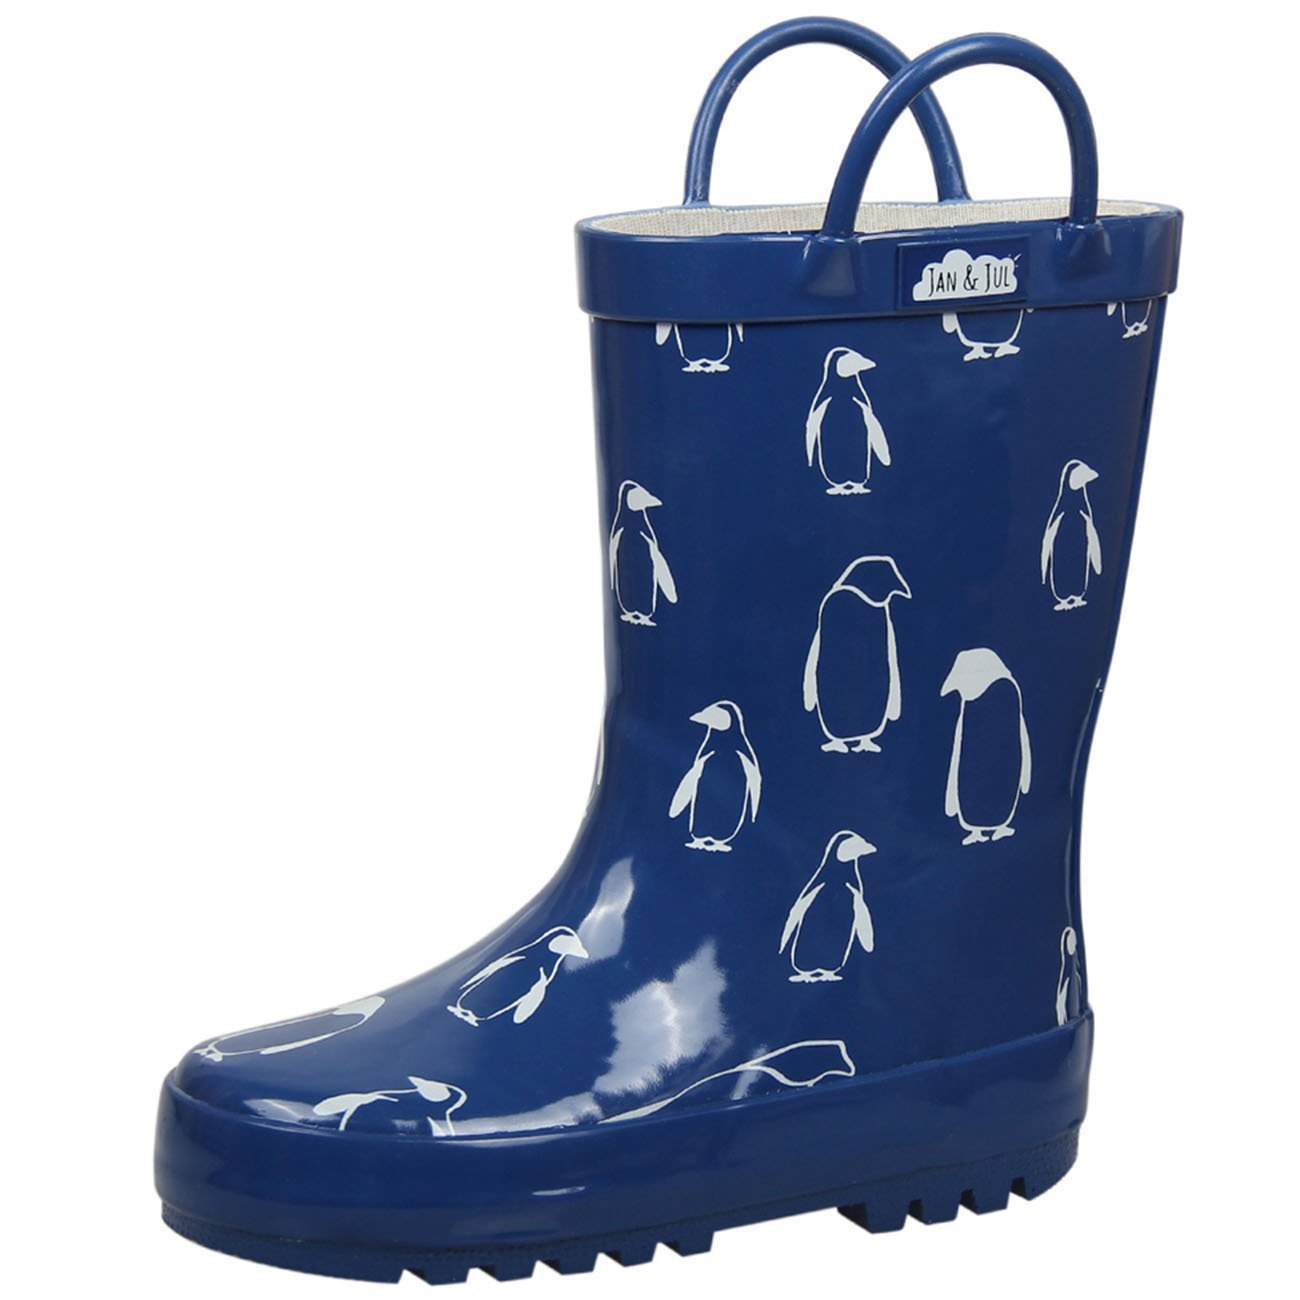 JAN & JUL Natural Rubber Wellies Unisex Toddler Kids (Toddler Size 7 with Handles, Penguin)